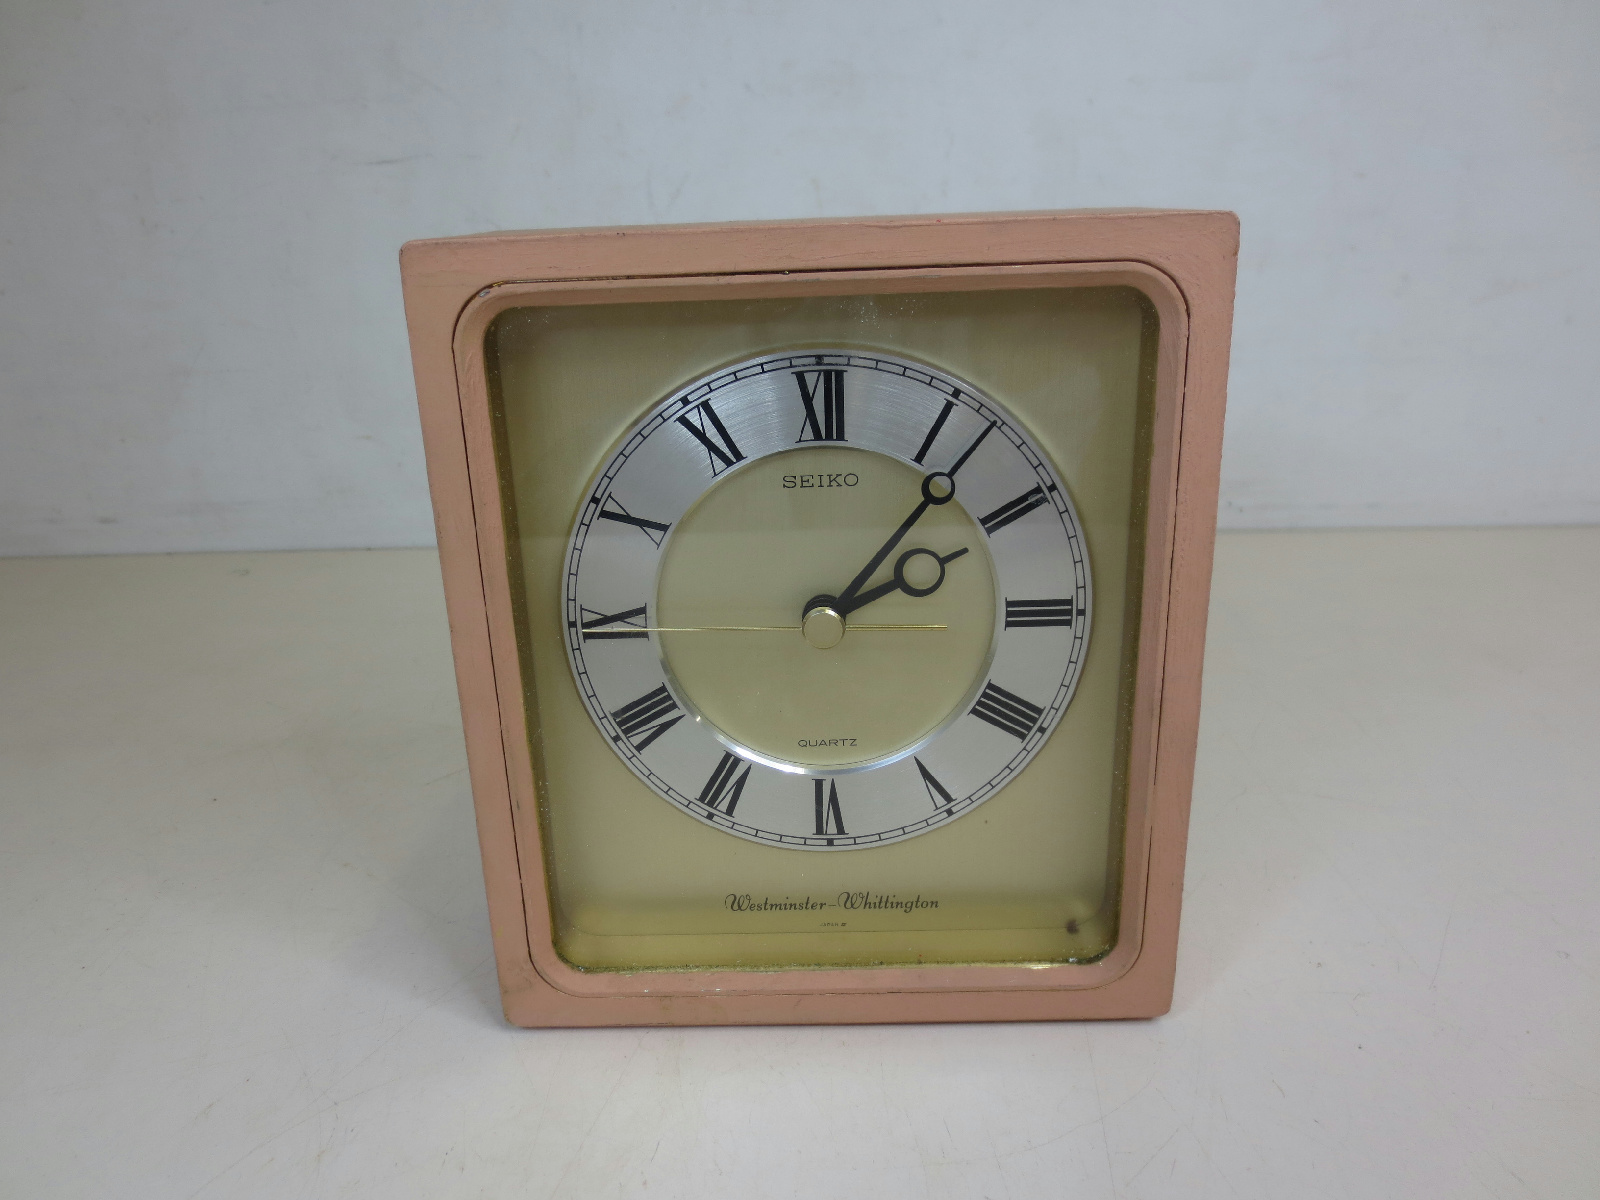 Seiko Quartz Westminster Whittington Square Clock